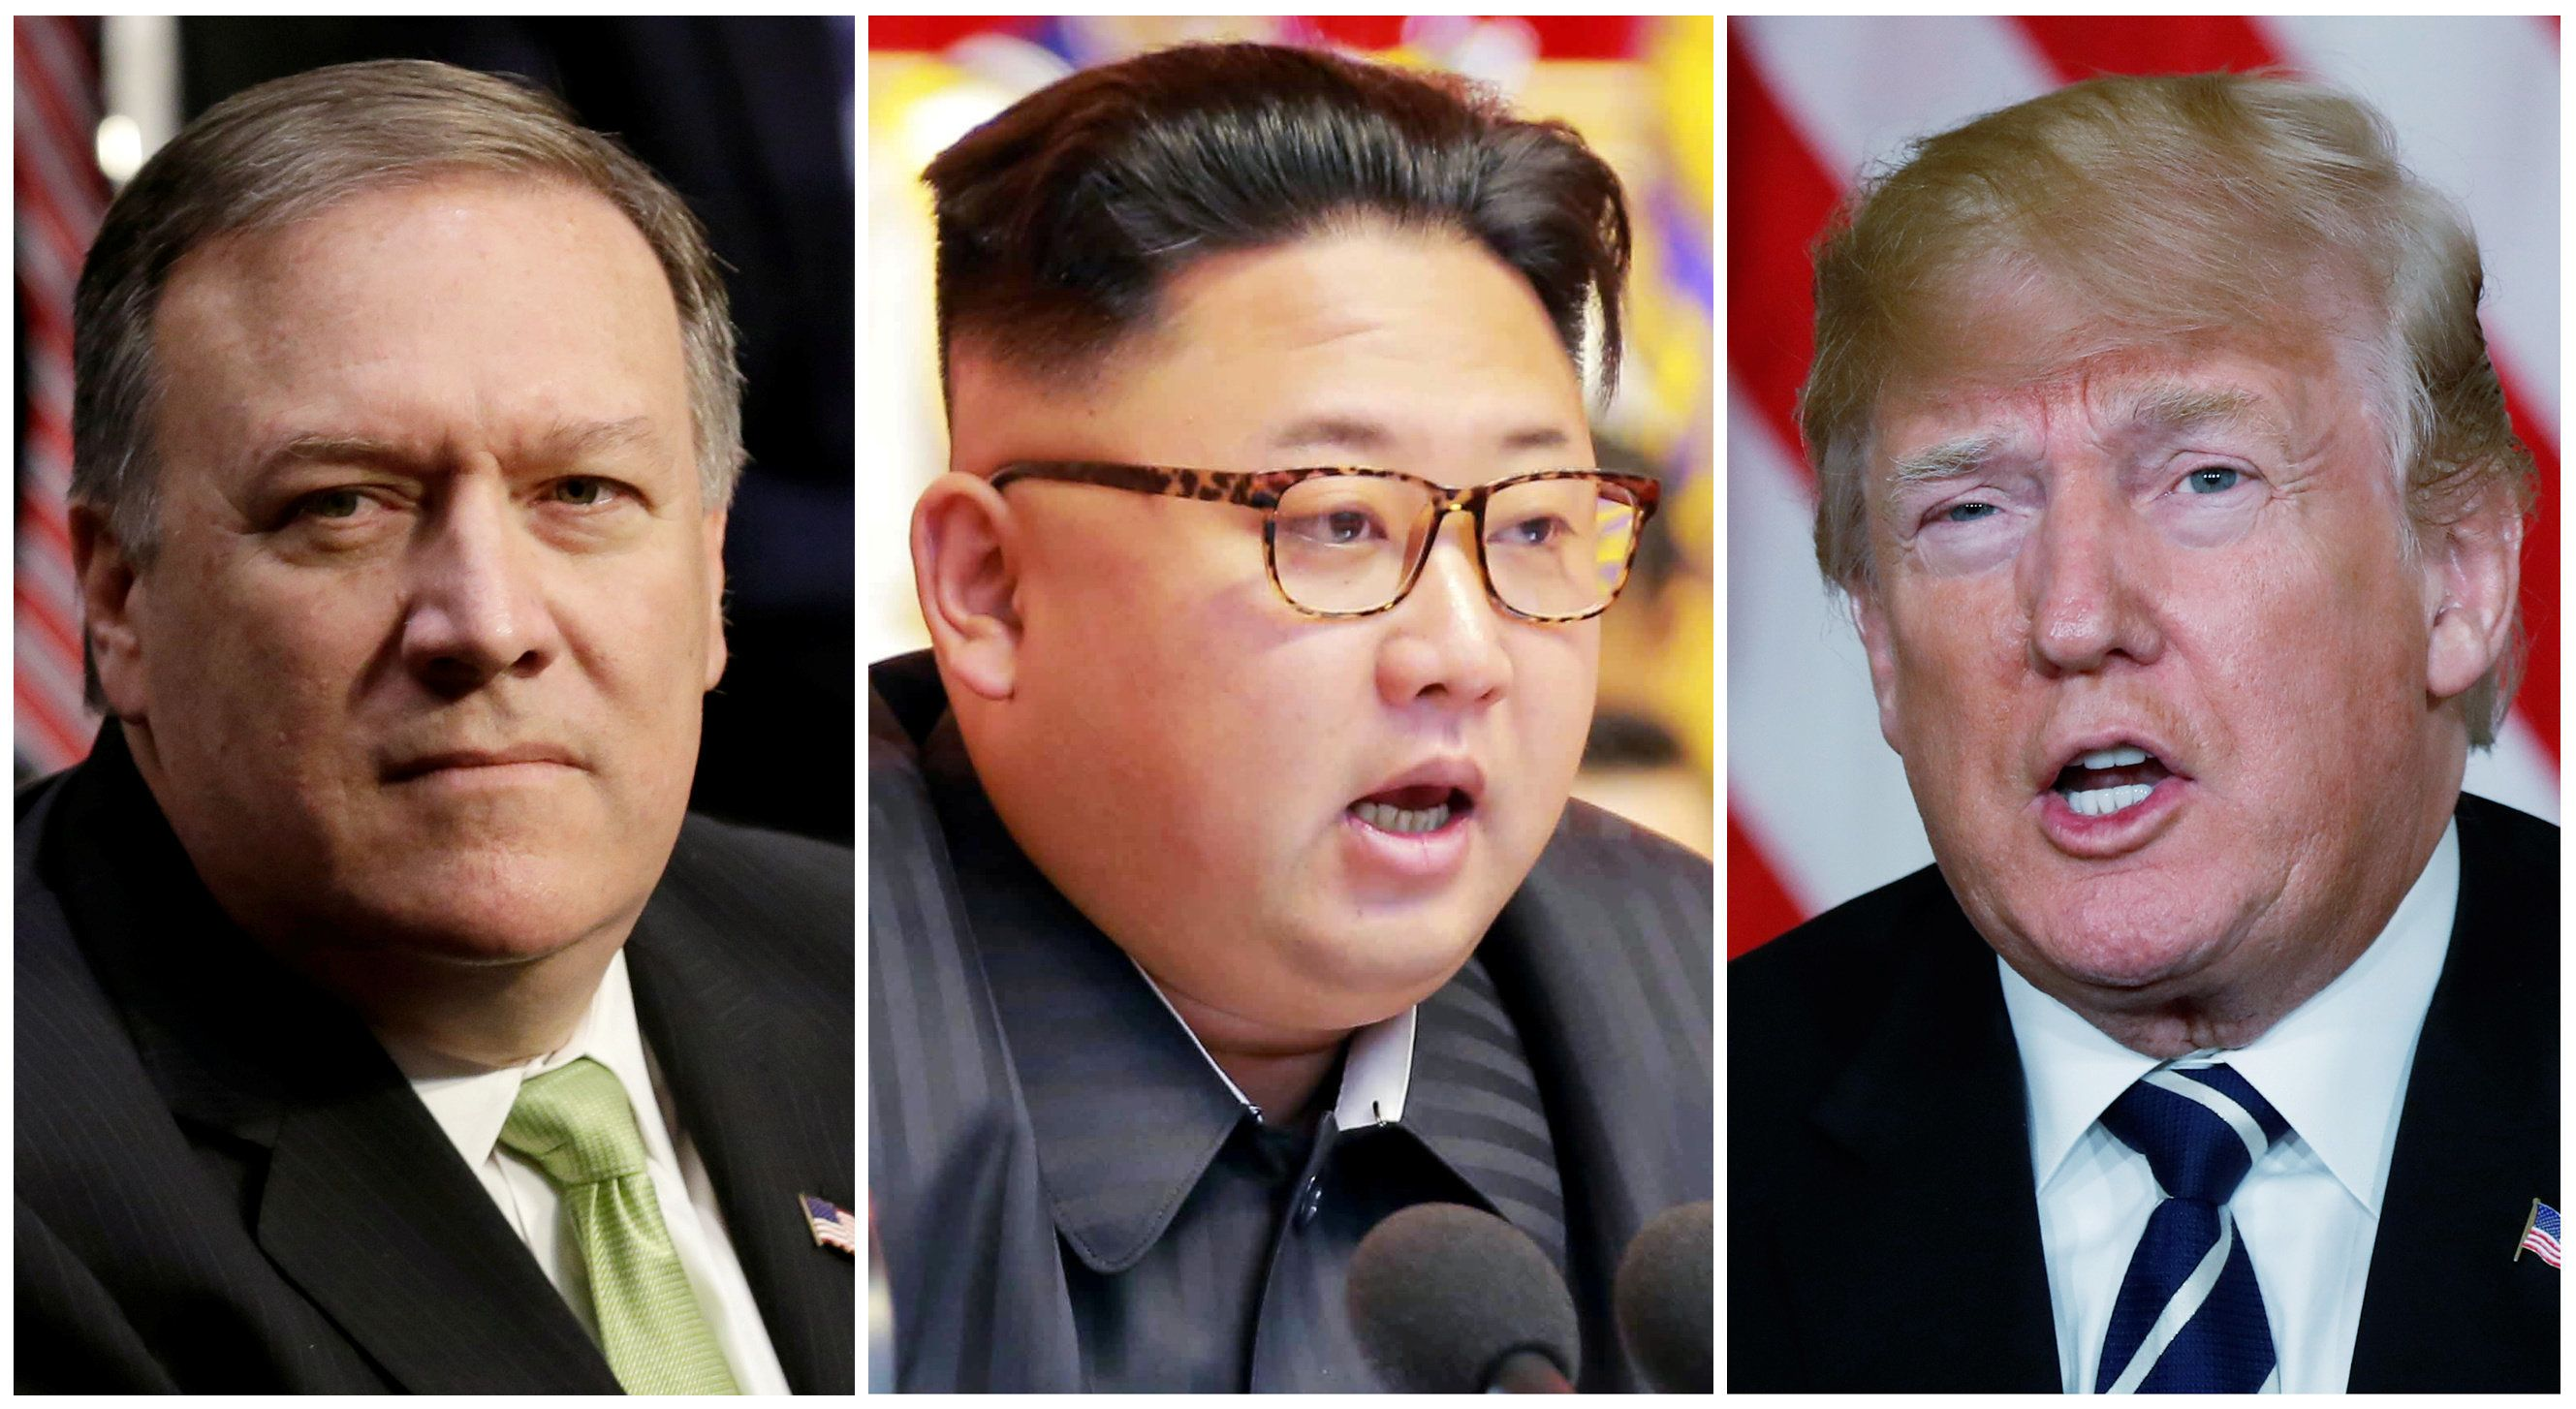 FILE PHOTO: A combination photo shows CIA Director Mike Pompeo (L) in Washington, North Korean leader Kim Jong Un (C) in Pyongyang, North Korea and U.S. President Donald Trump (R), in Palm Beach, Florida, U.S., respectively from Reuters files.   REUTERS/Yuri Gripas (L) & KCNA handout via Reuters & Kevin Lamarque (R)    ATTENTION EDITORS - THIS PICTURE WAS PROVIDED BY A THIRD PARTY. REUTERS IS UNABLE TO INDEPENDENTLY VERIFY THE AUTHENTICITY, CONTENT, LOCATION OR DATE OF THIS IMAGE. FOR EDITORIAL USE ONLY. NOT FOR SALE FOR MARKETING OR ADVERTISING CAMPAIGNS. NO THIRD PARTY SALES. NOT FOR USE BY REUTERS THIRD PARTY DISTRIBUTORS. SOUTH KOREA OUT. NO COMMERCIAL OR EDITORIAL SALES IN SOUTH KOREA.